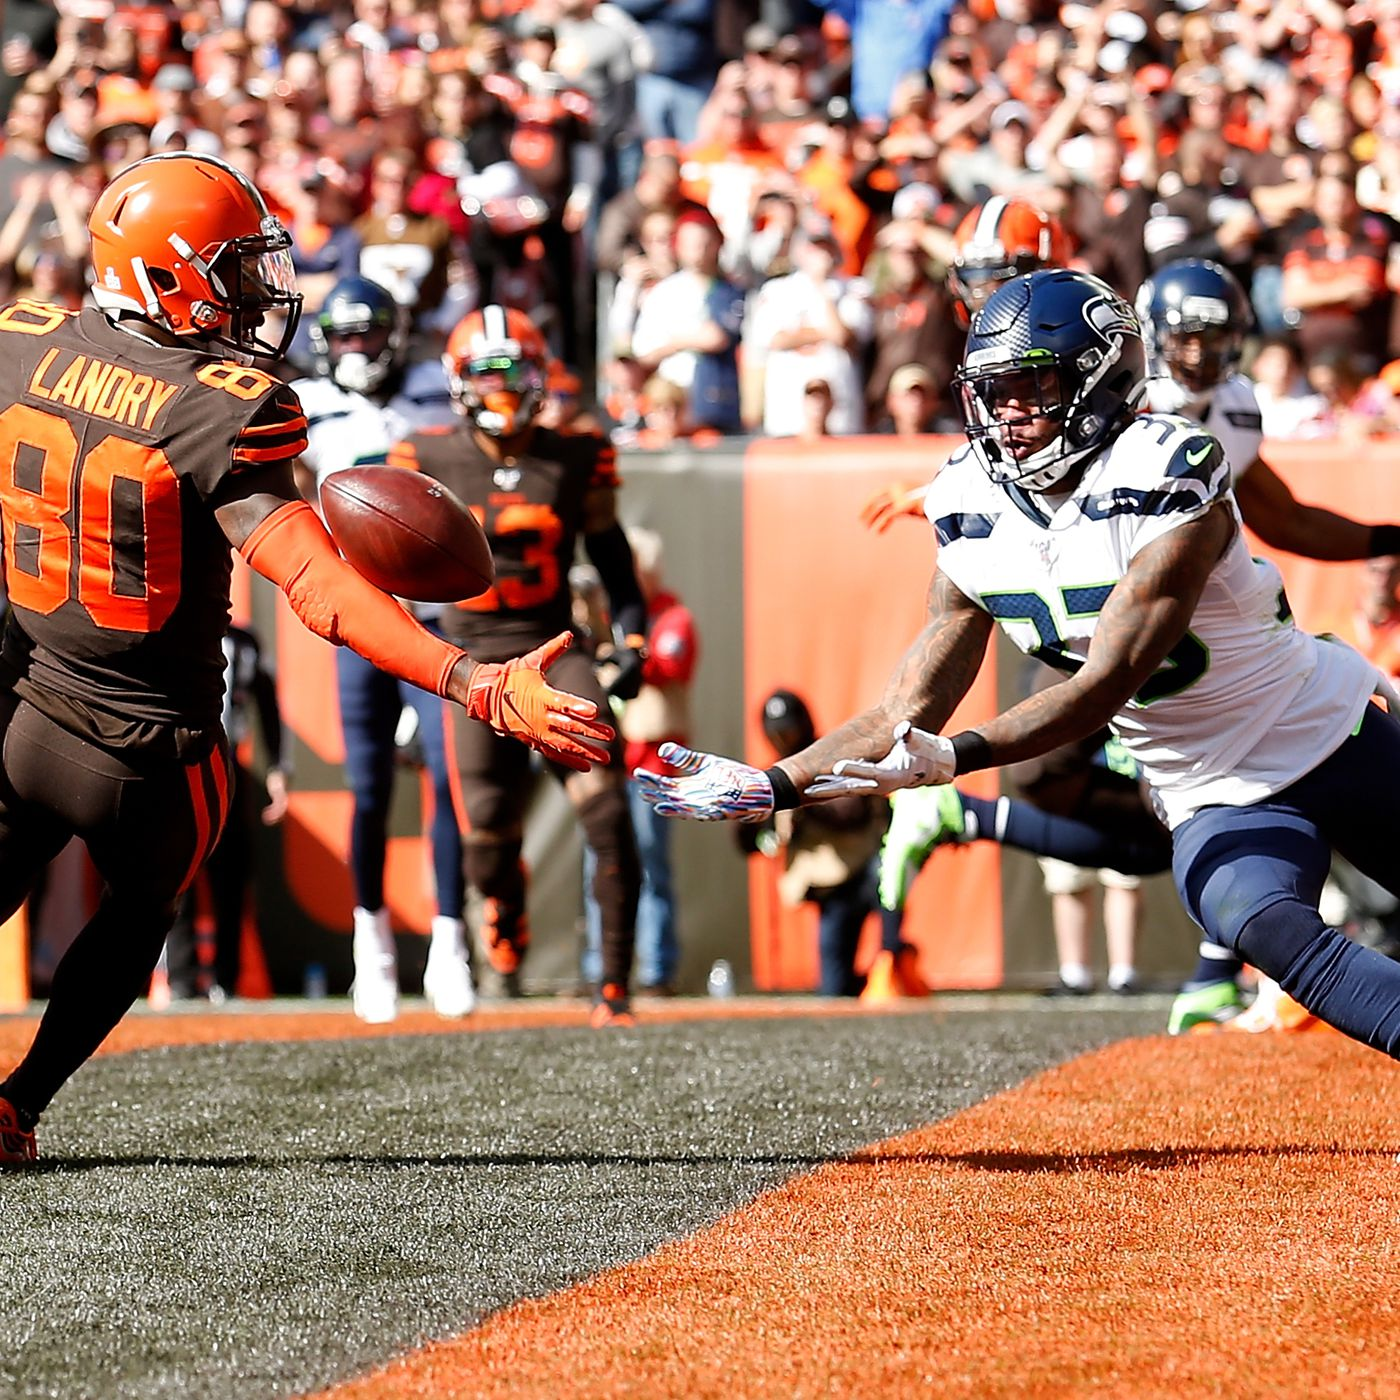 Seahawks Vs Browns Final Score Despite 4 Touchdowns 4 Turnovers Kill Cleveland S Chances In 32 28 Loss Dawgs By Nature